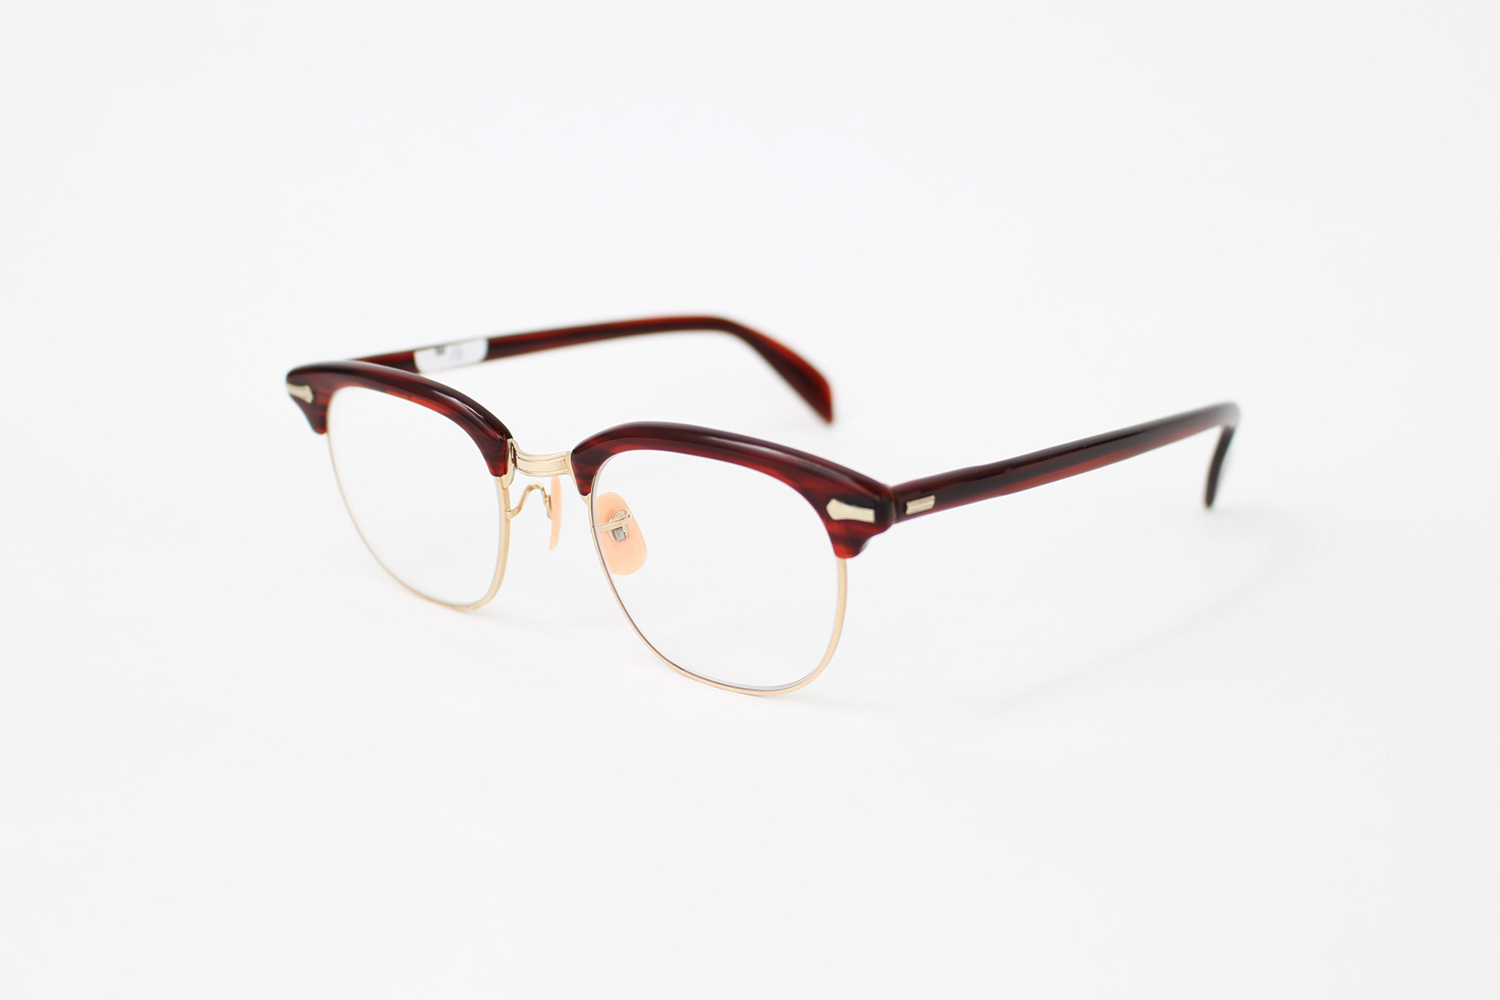 Shuron Optical Company / Combination - R-YG|The Spectacle